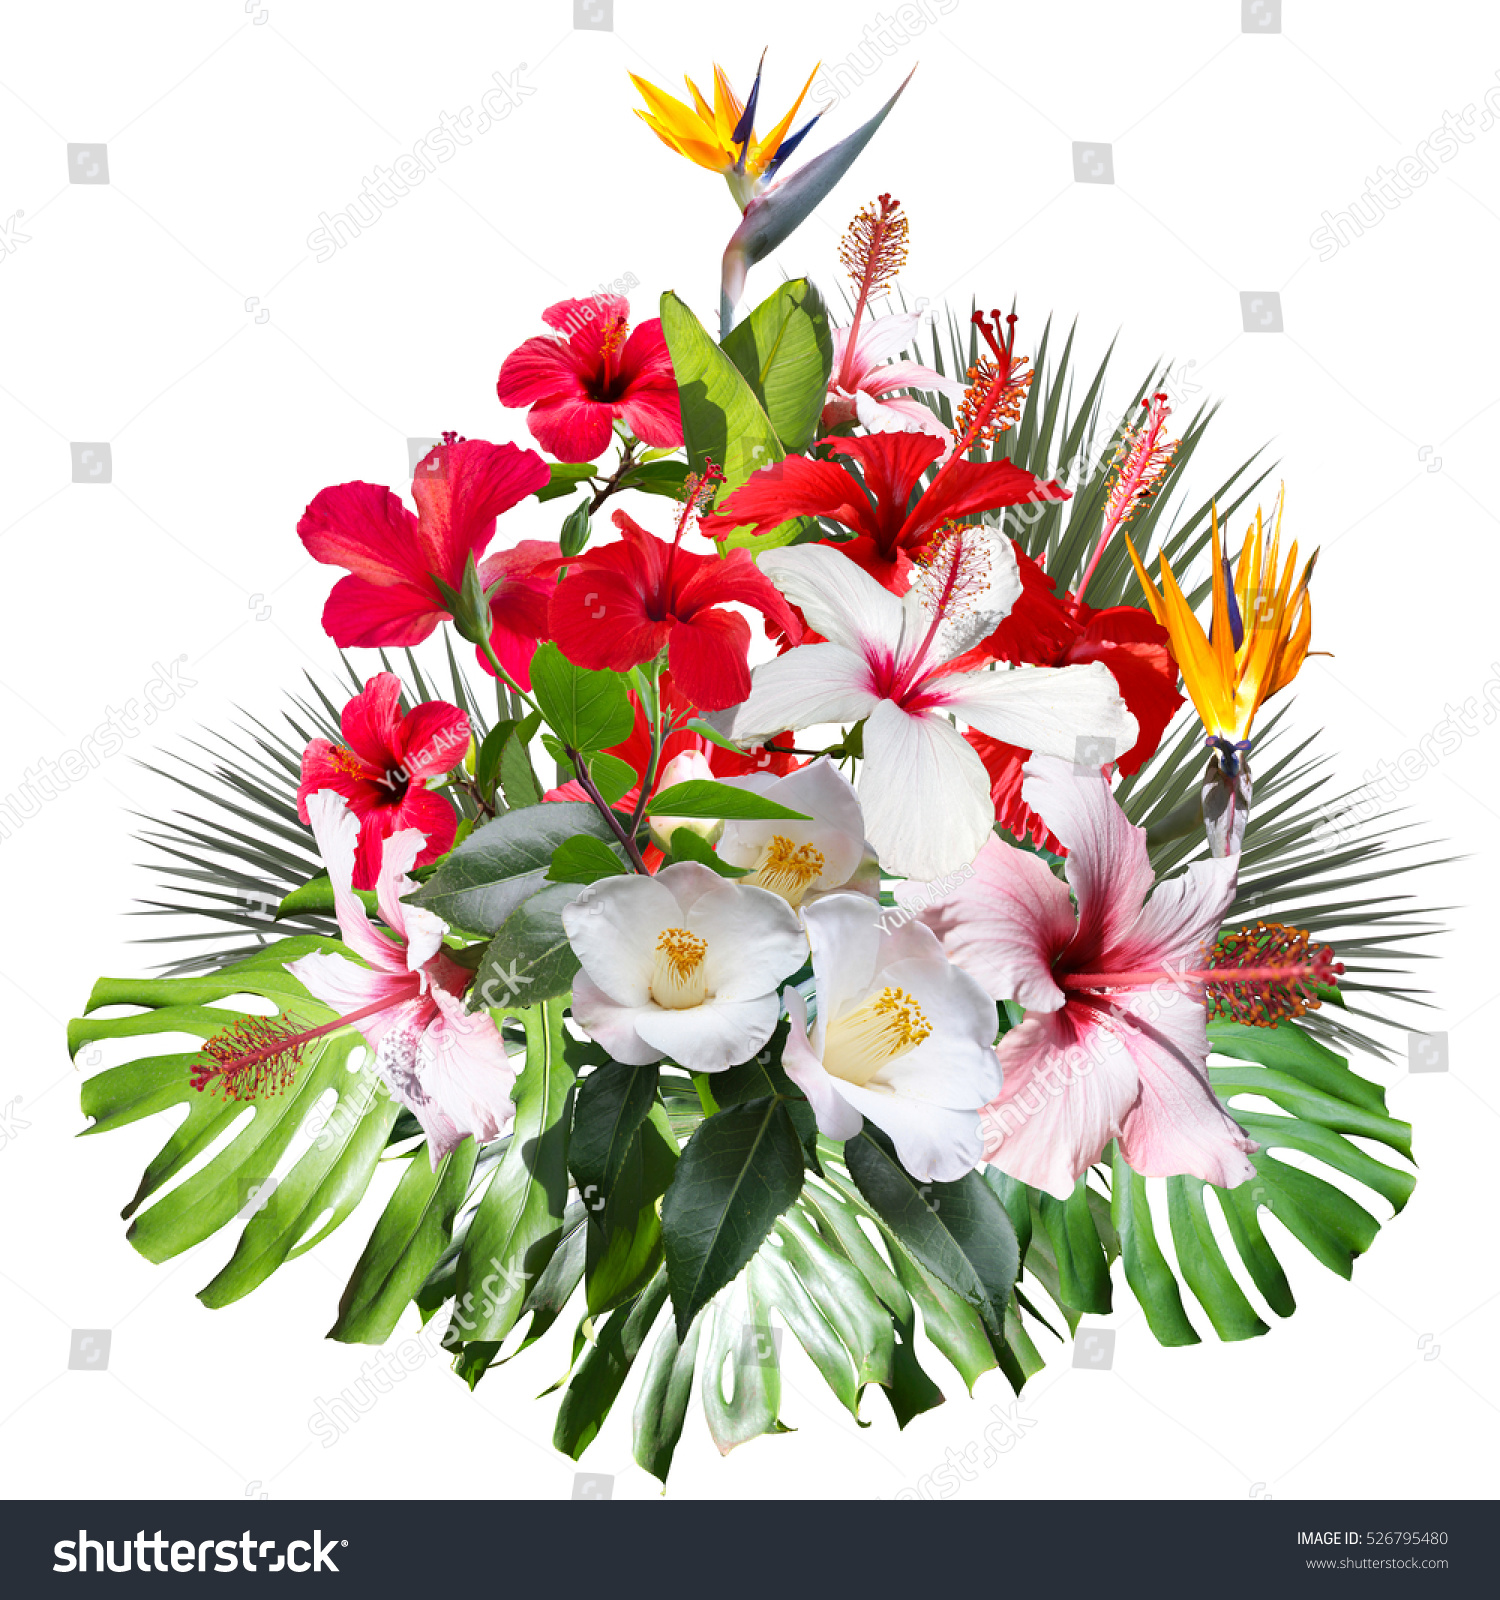 Floral Tropical Bouquet Isolated On White Stock Photo (Royalty Free ...